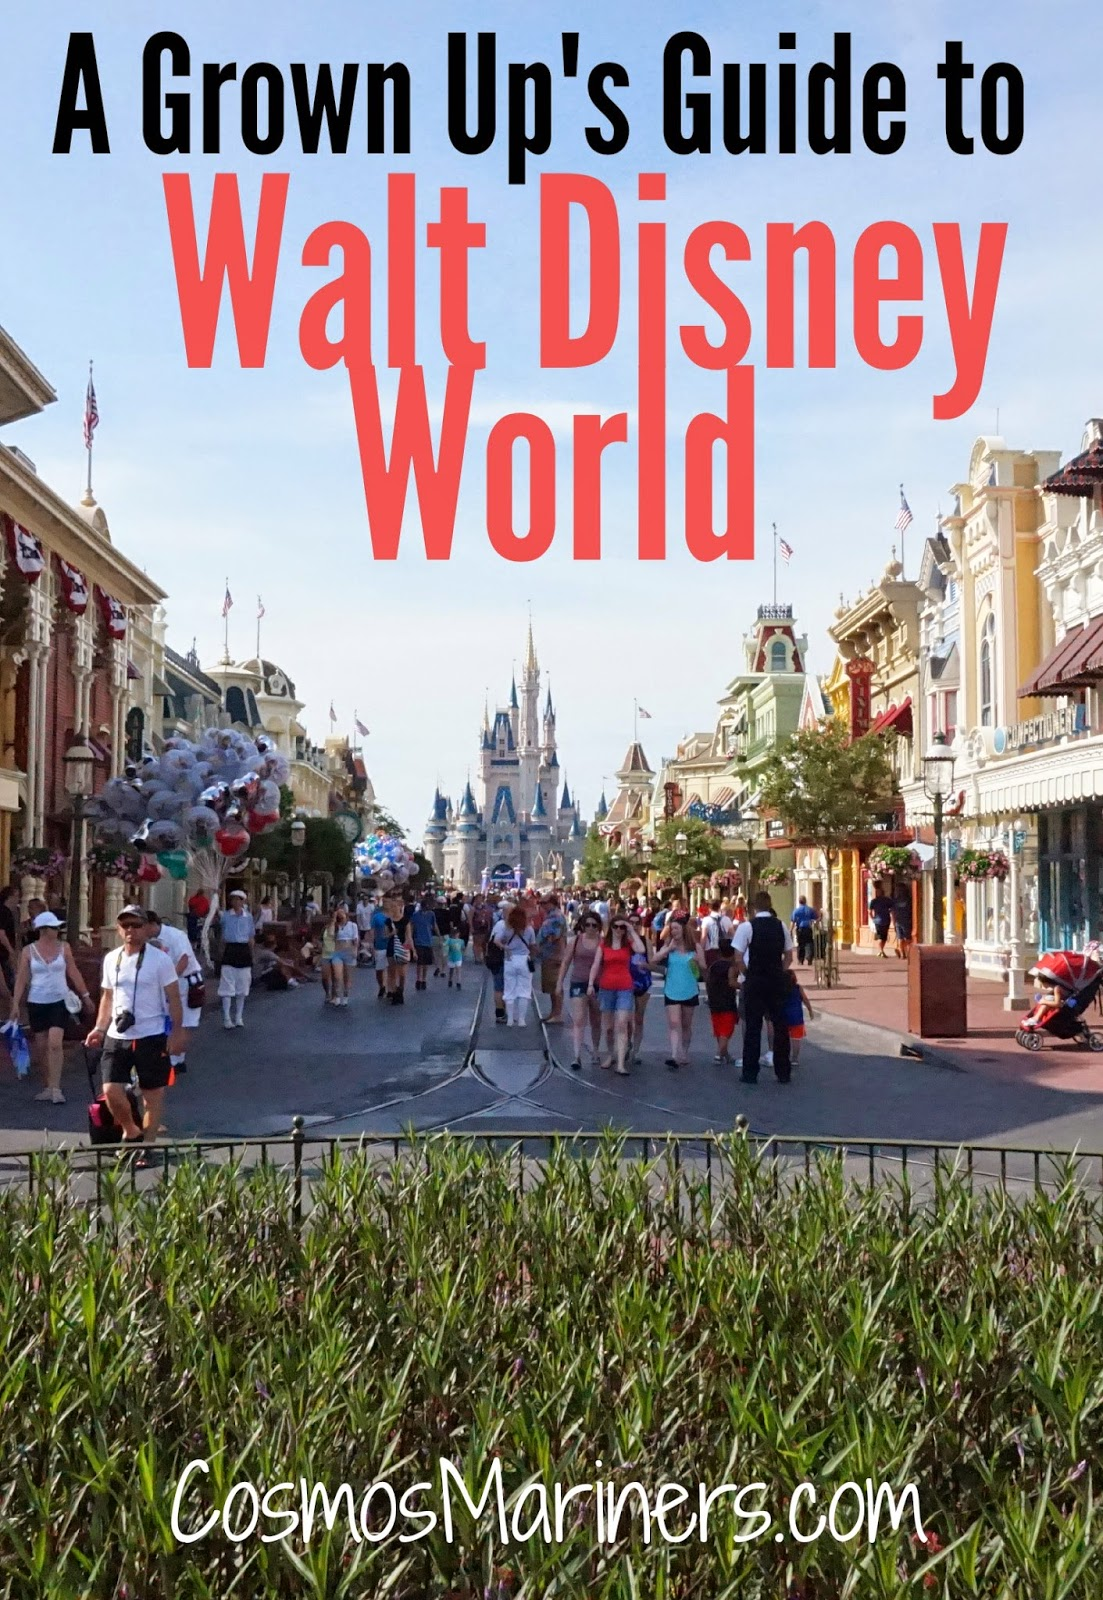 A Grown Up's Guide to Walt Disney World | CosmosMariners.com